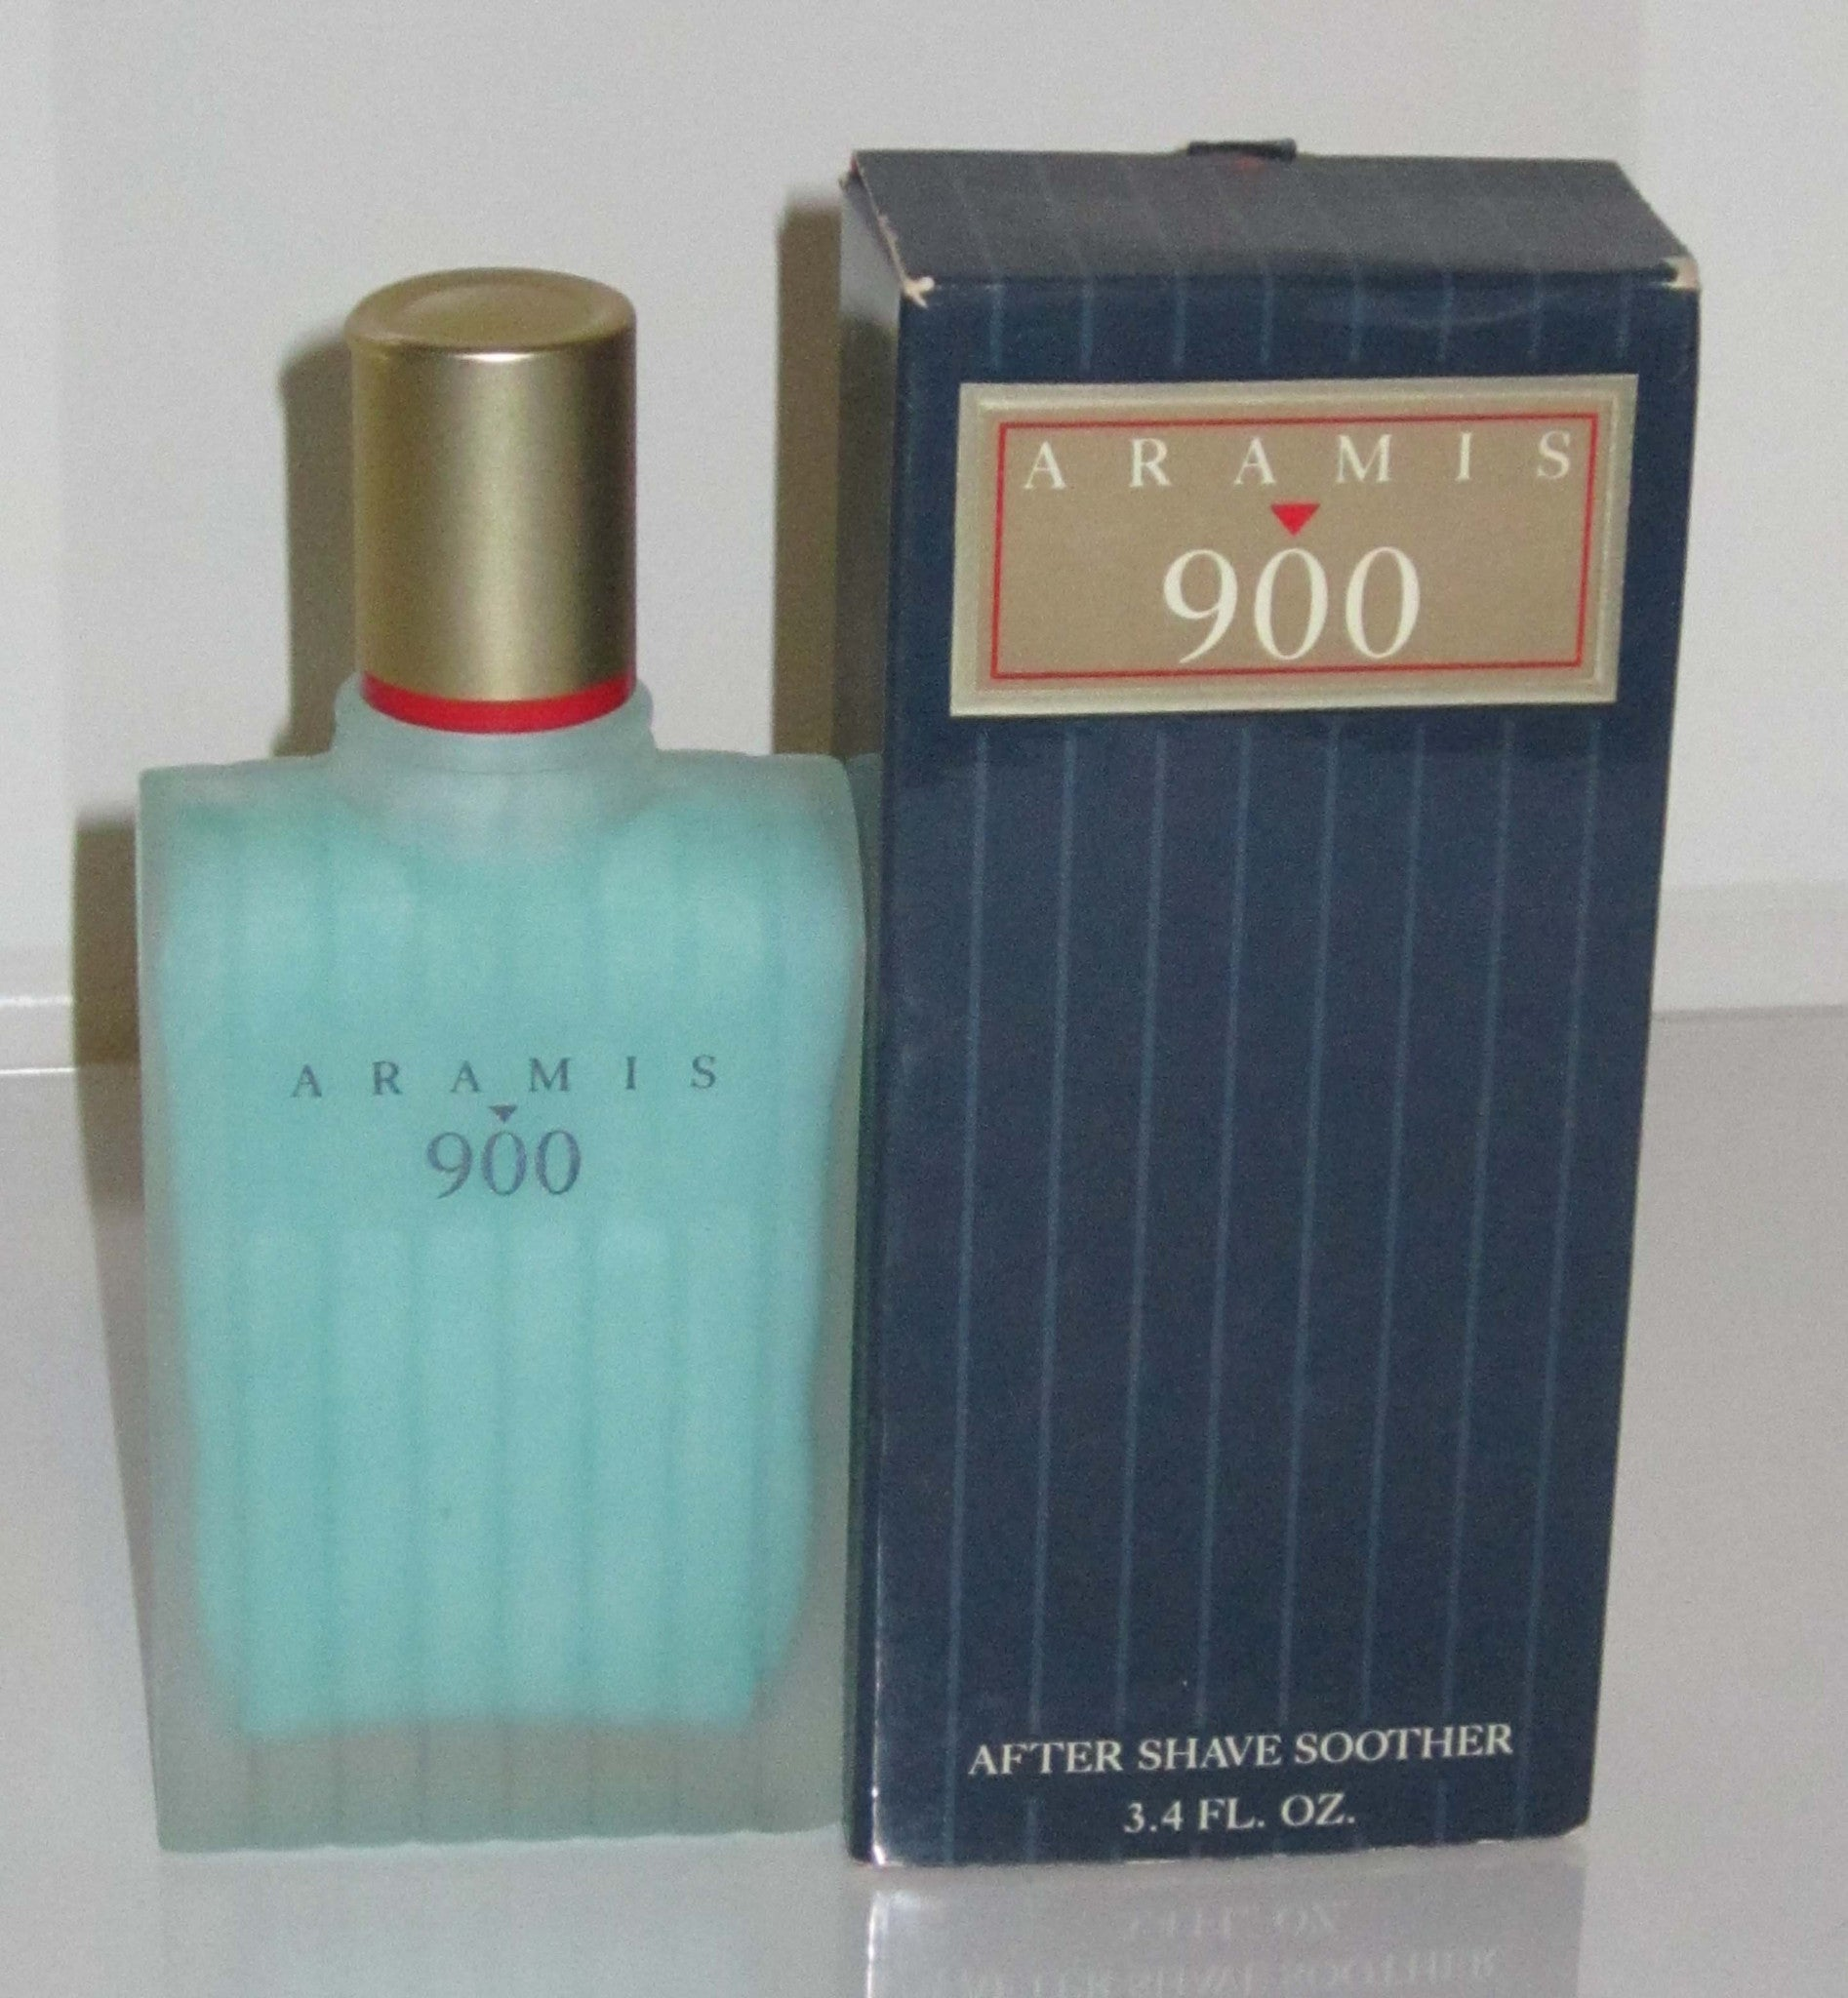 Vintage Aramis 900 After Shave Soother